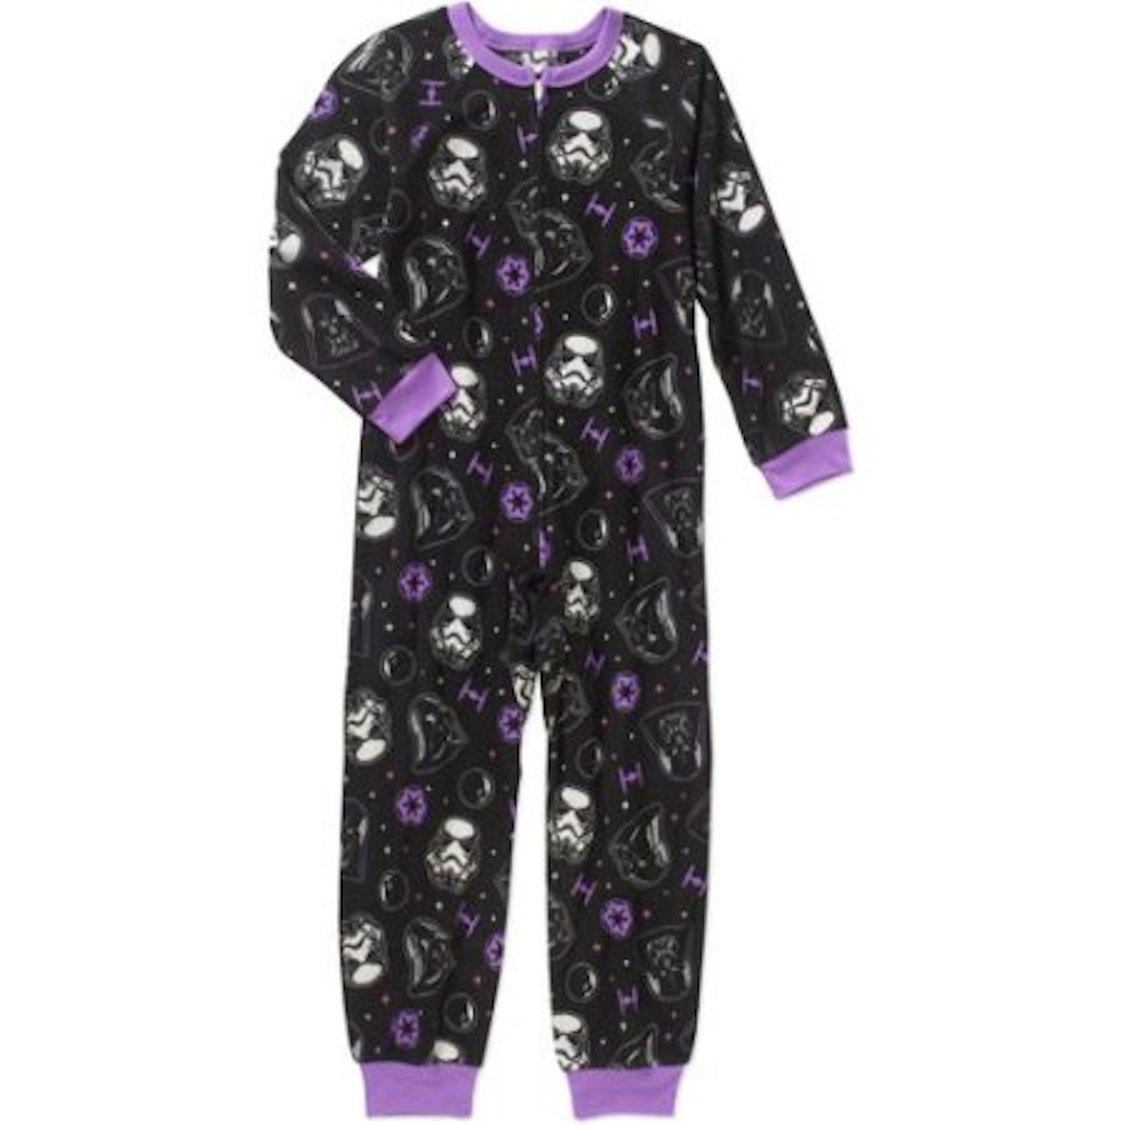 Star Wars Little & Big Girls Blanket Sleeper Pajamas 00-XZ4IS1-FR